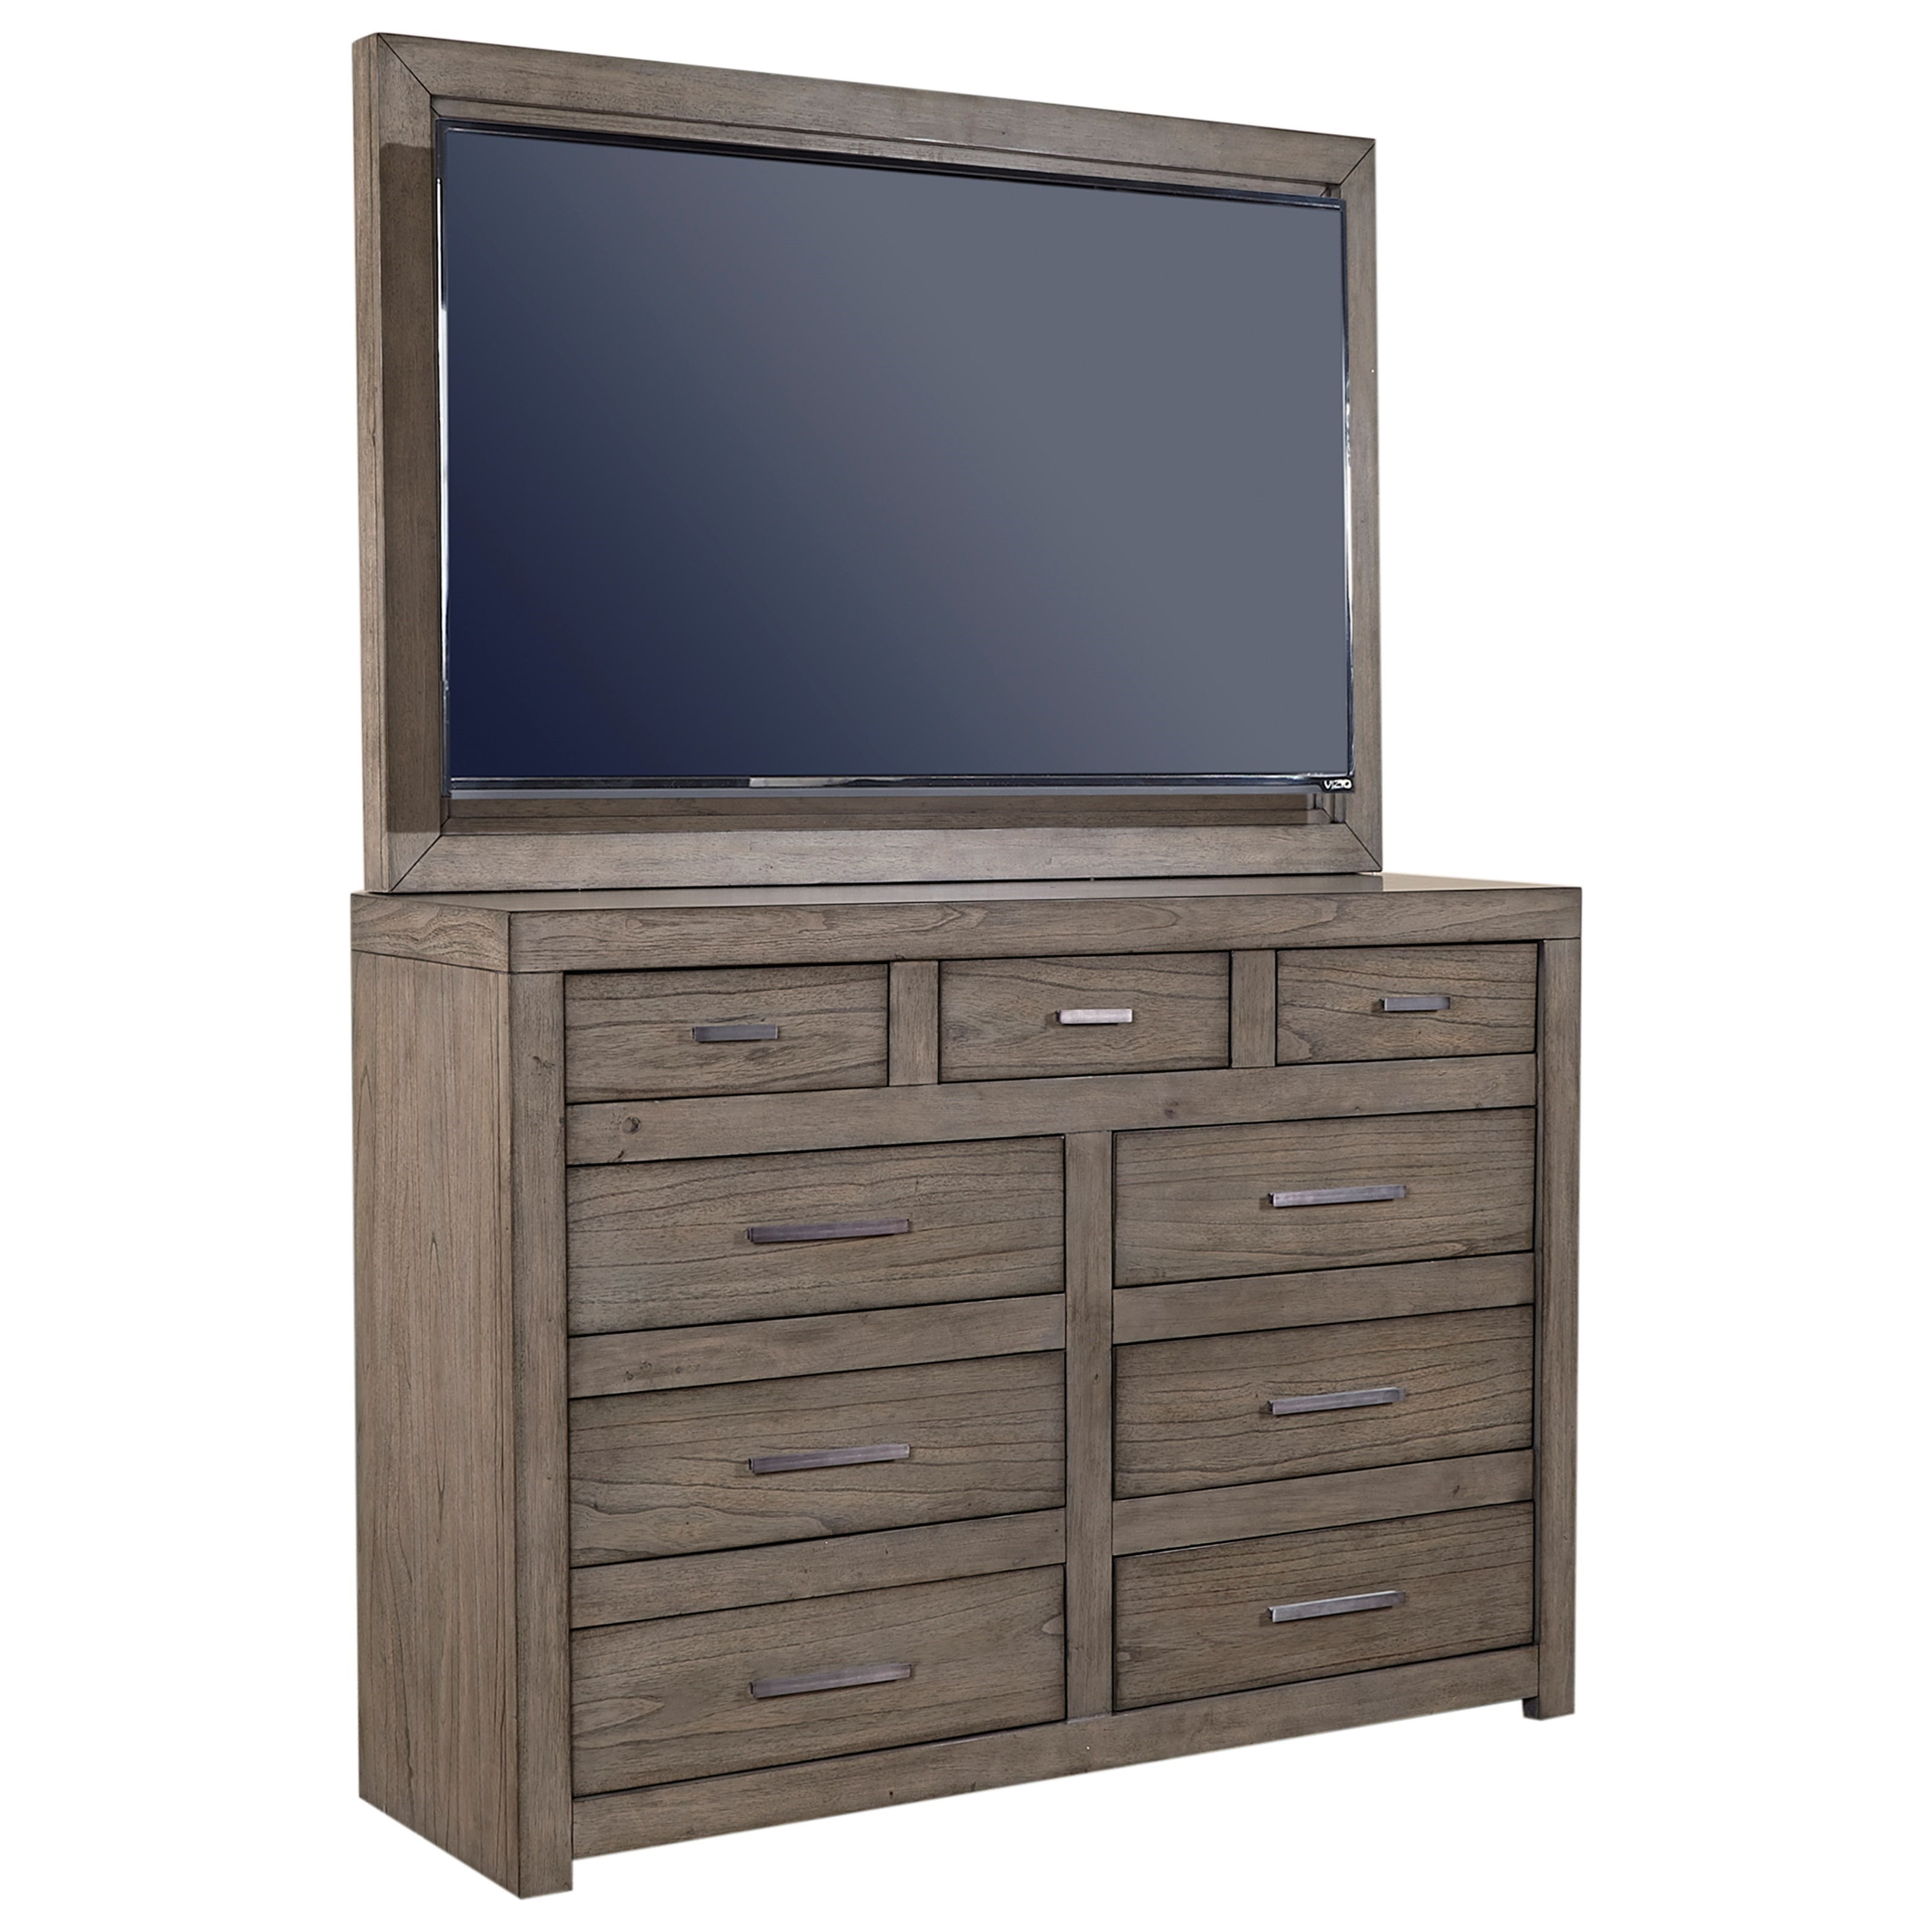 Aspenhome Modern Loft Media Chest with TV Mount - Item Number: IML-455+487-GRY